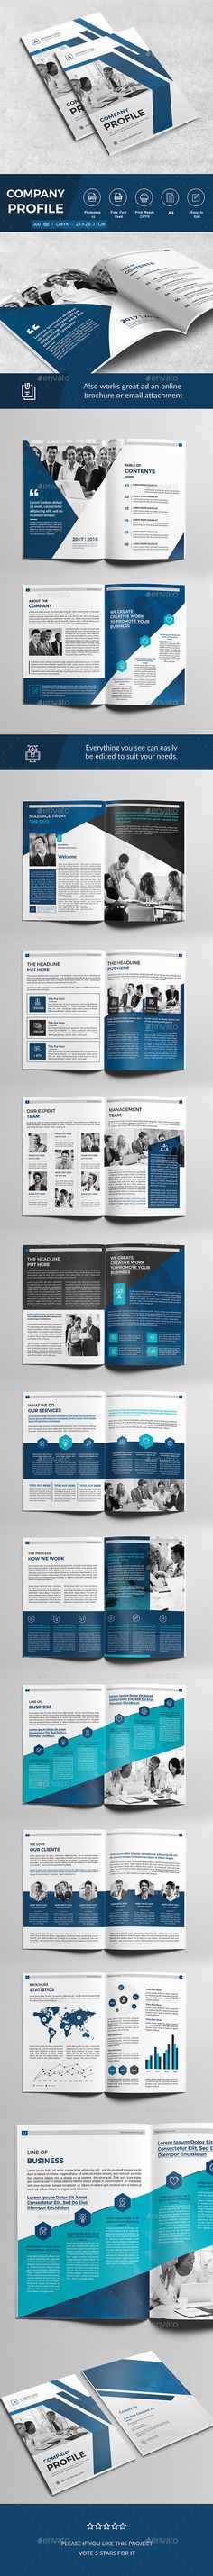 Company Profile — Photoshop PSD #brochure • Download ➝ https://graphicriver.net/item/company-profile/18867251?ref=pxcr